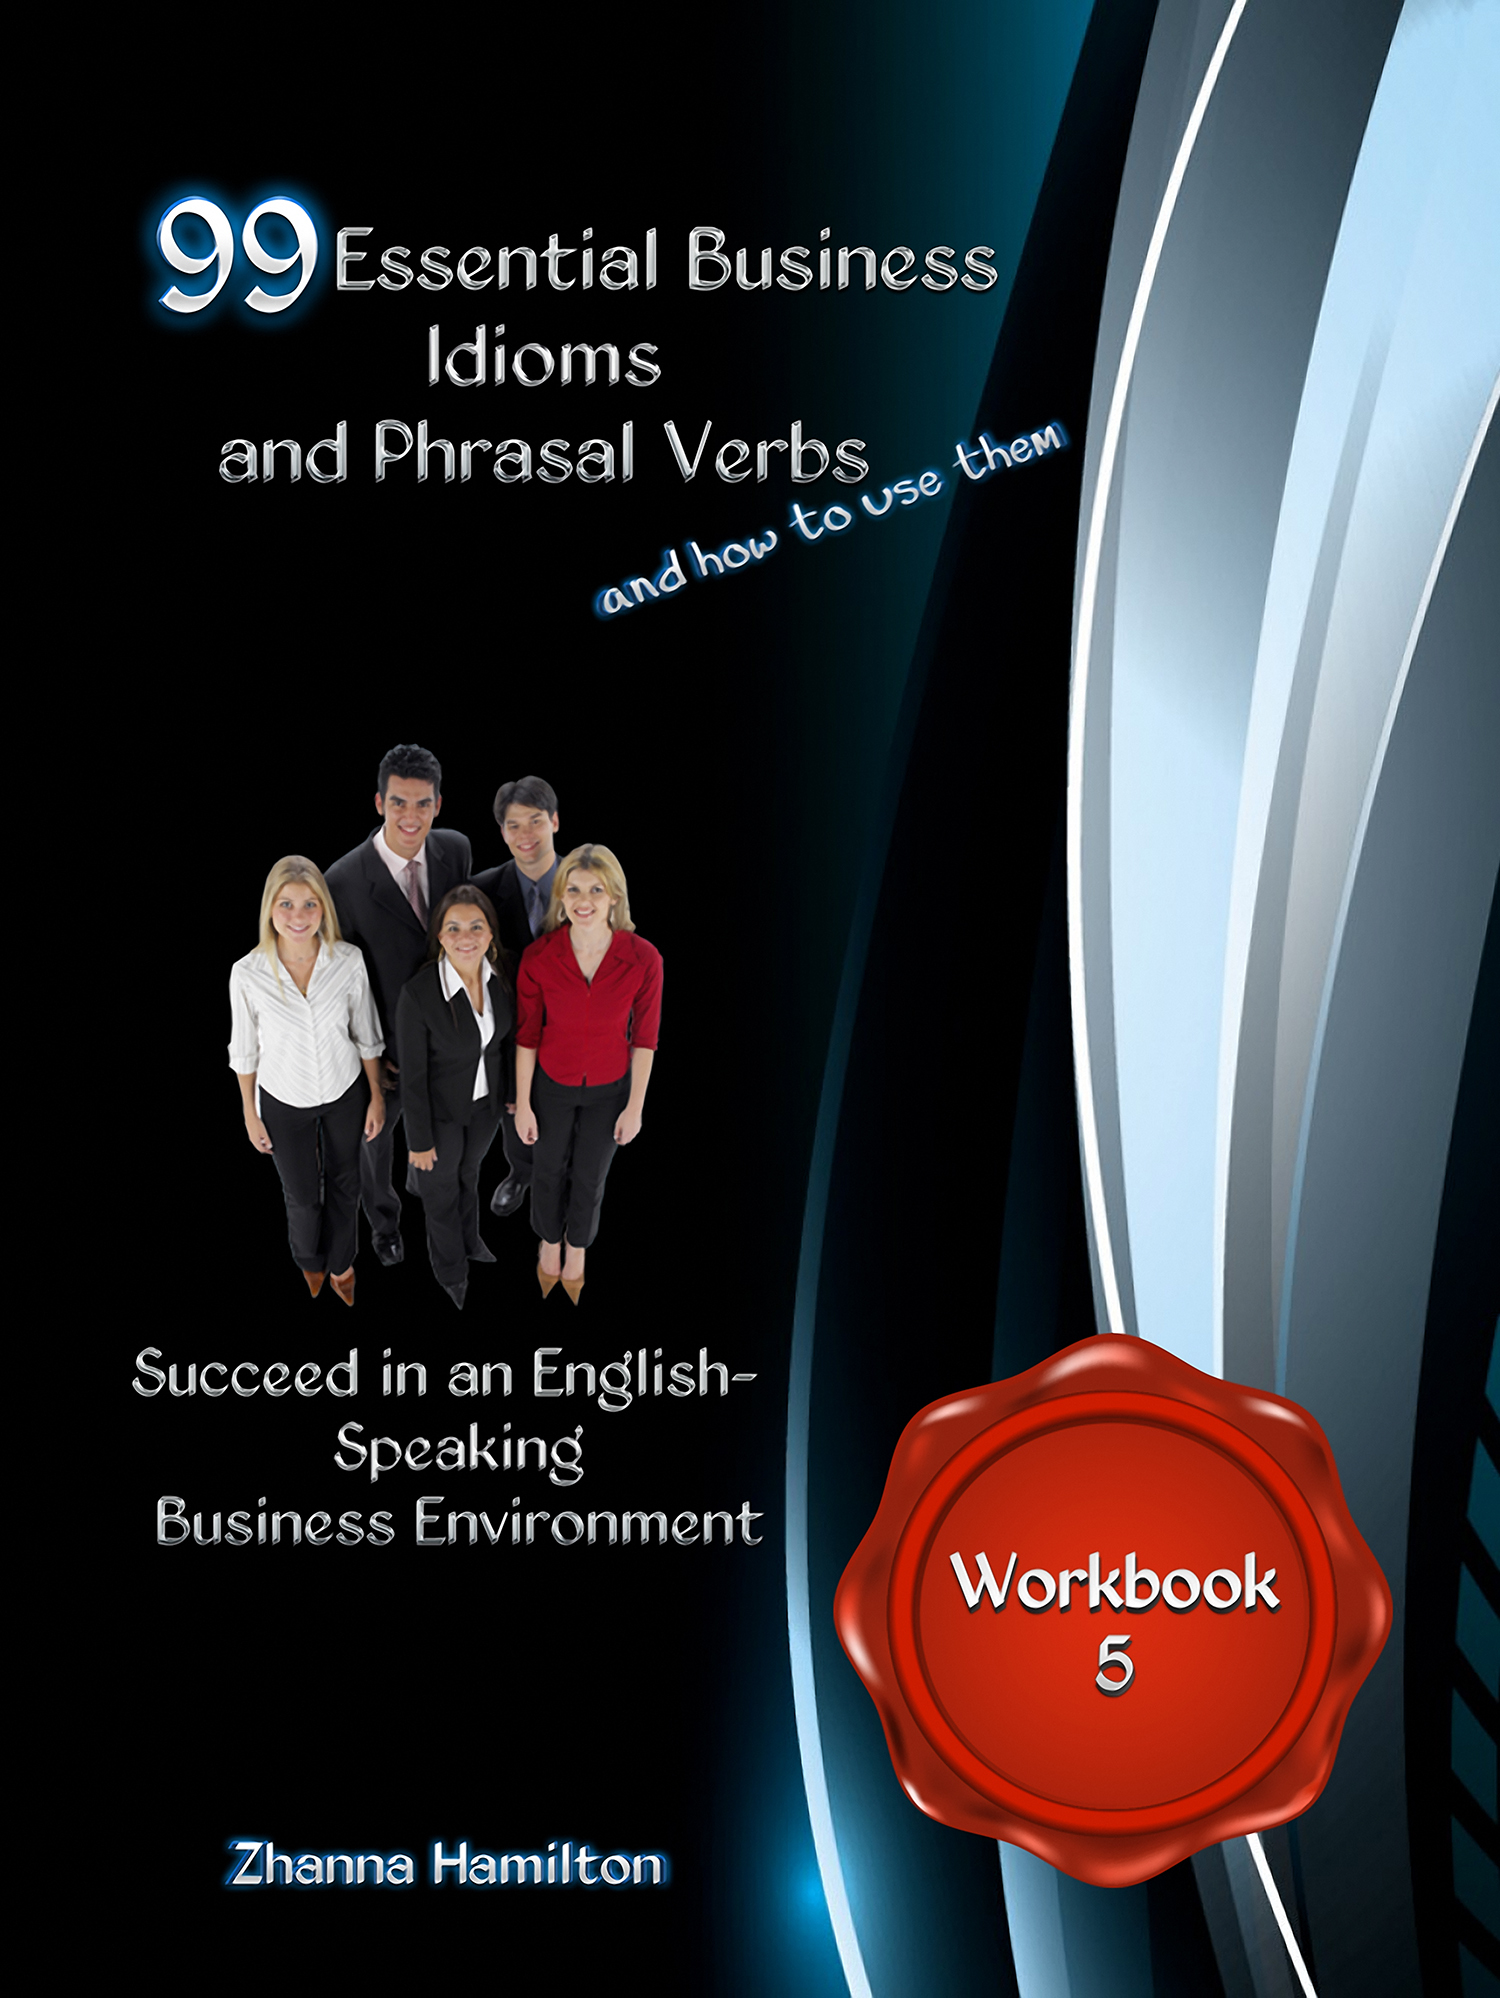 99 Essential Business Idioms and Phrasal Verbs: Succeed in an English-Speaking Business Environment - Workbook 5